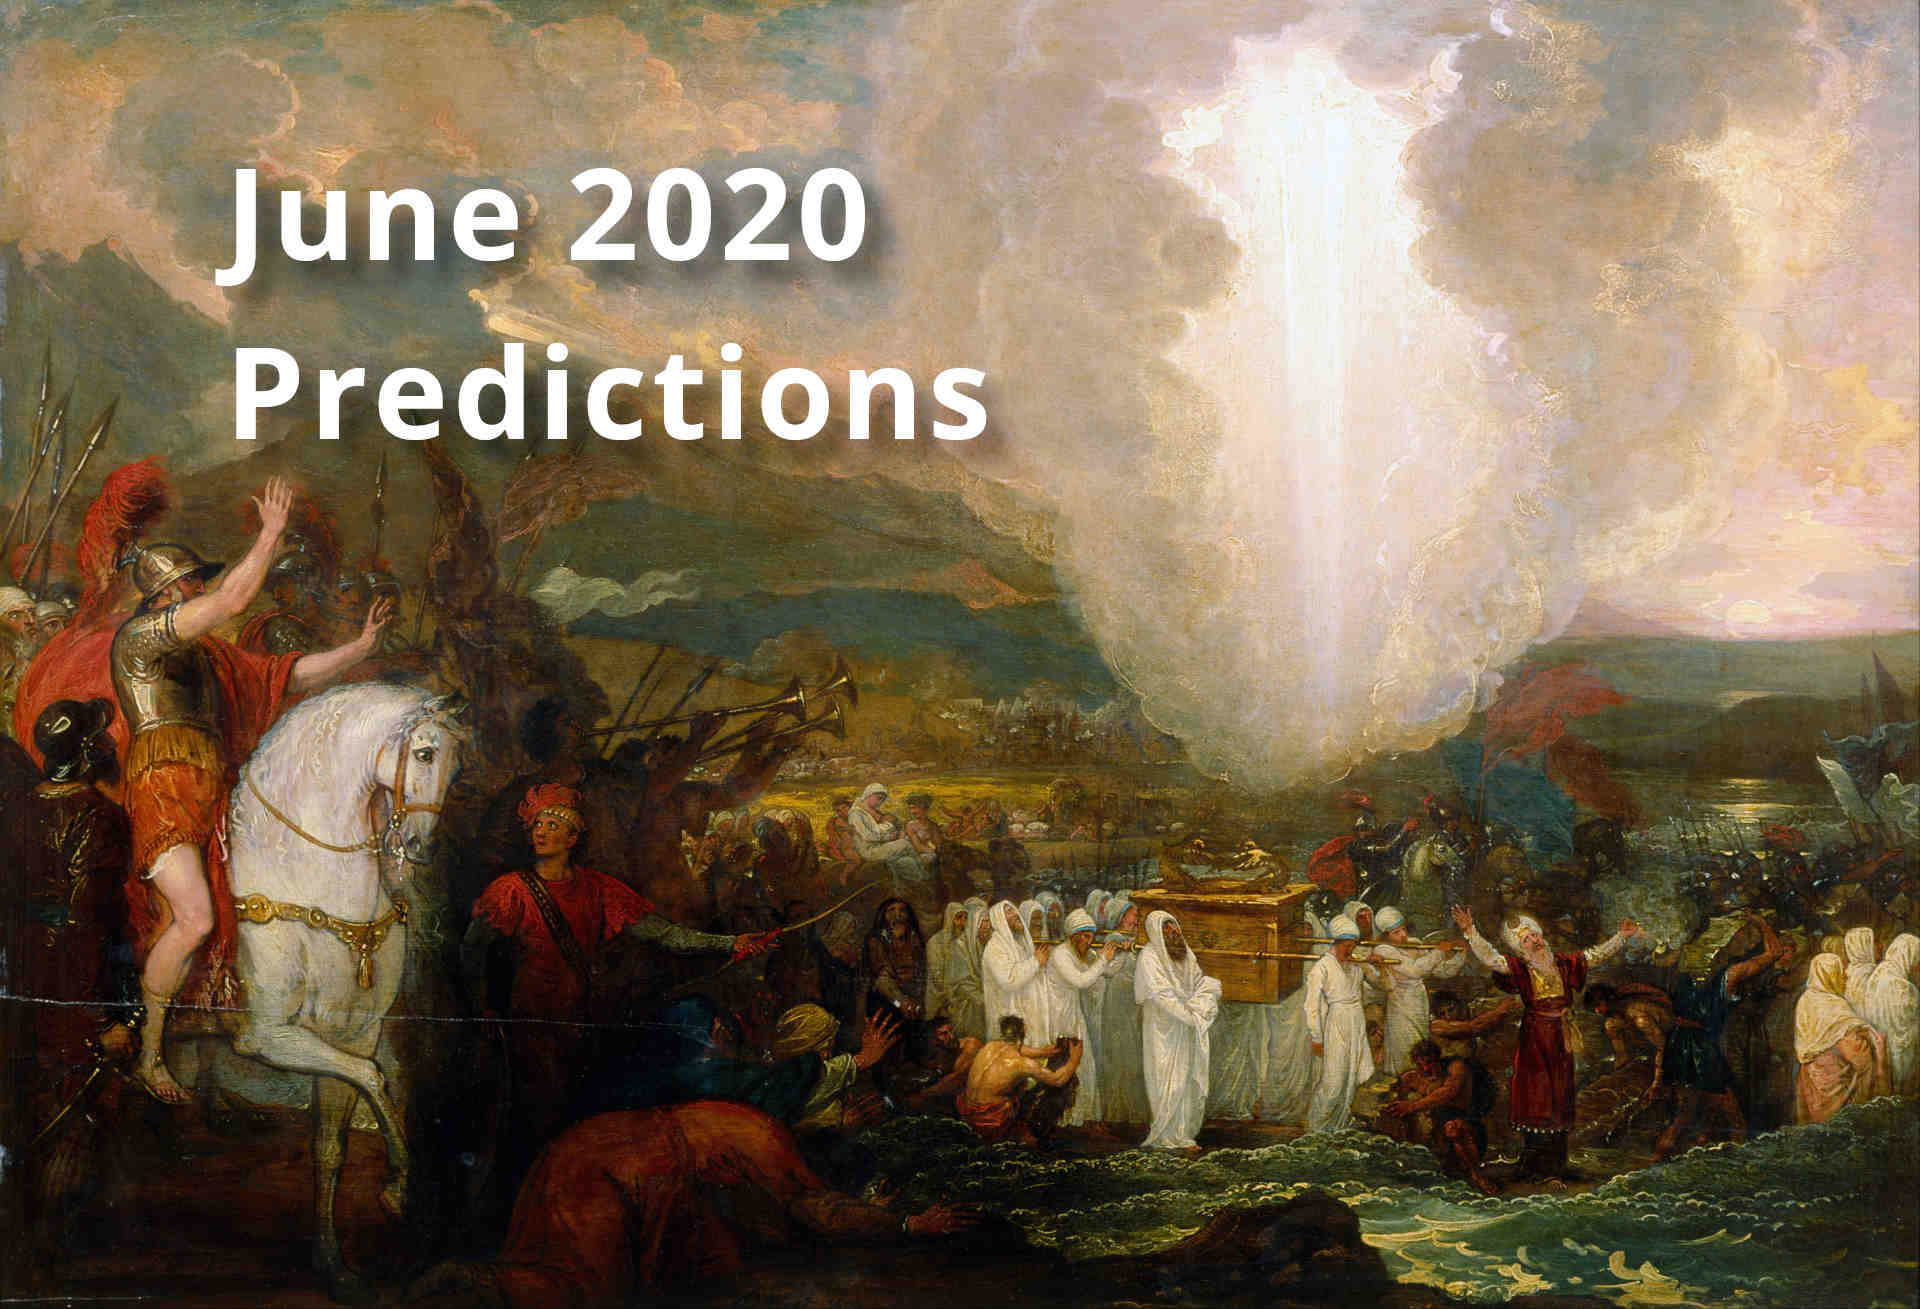 June 2020 Astrology Predictions